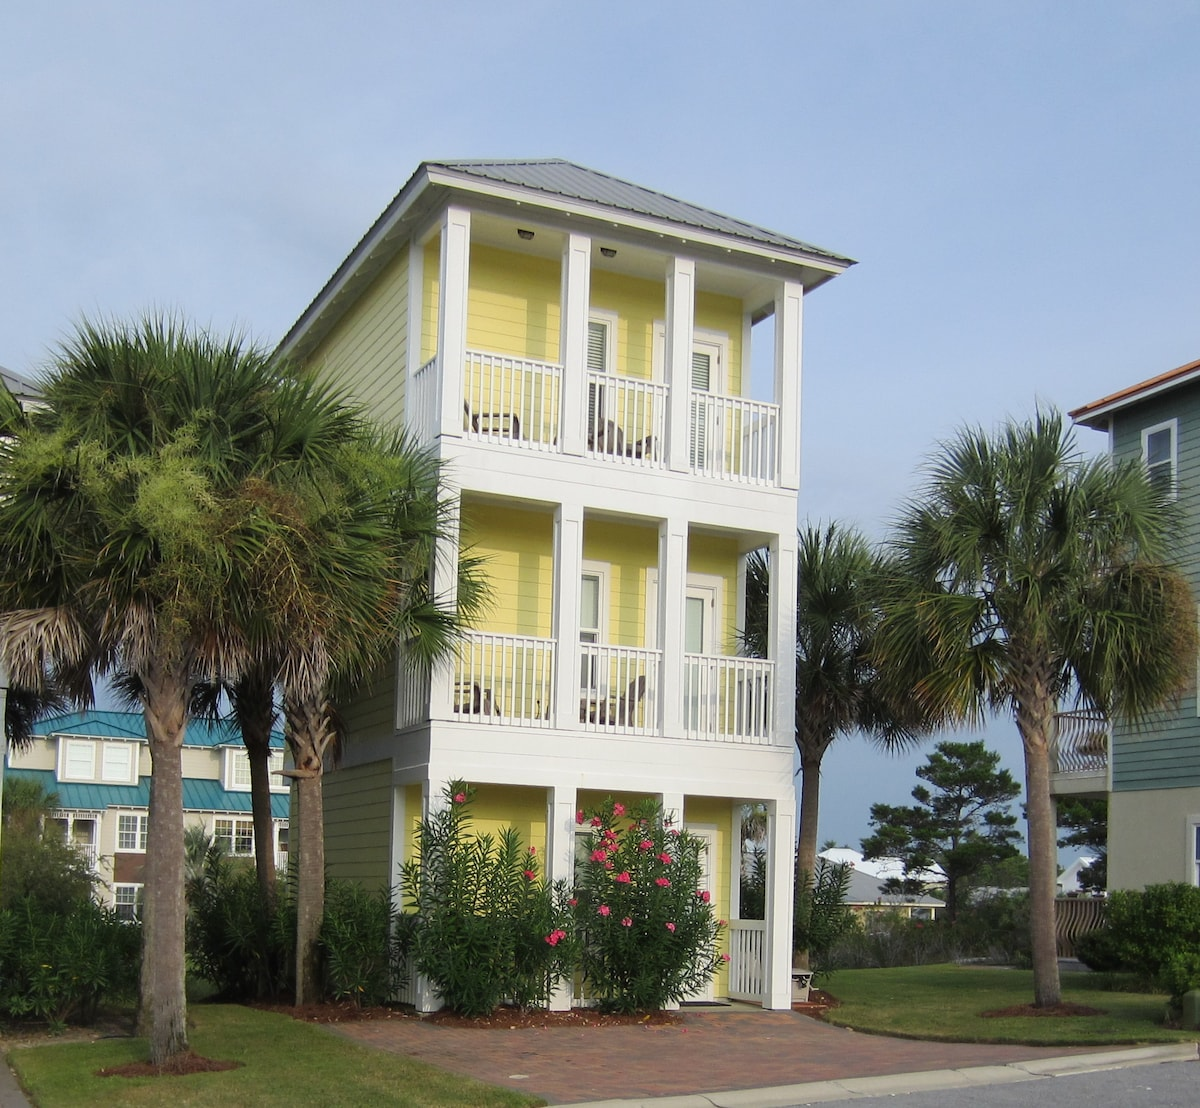 30A - 2 BEDROOM HOUSE - BEST RATES